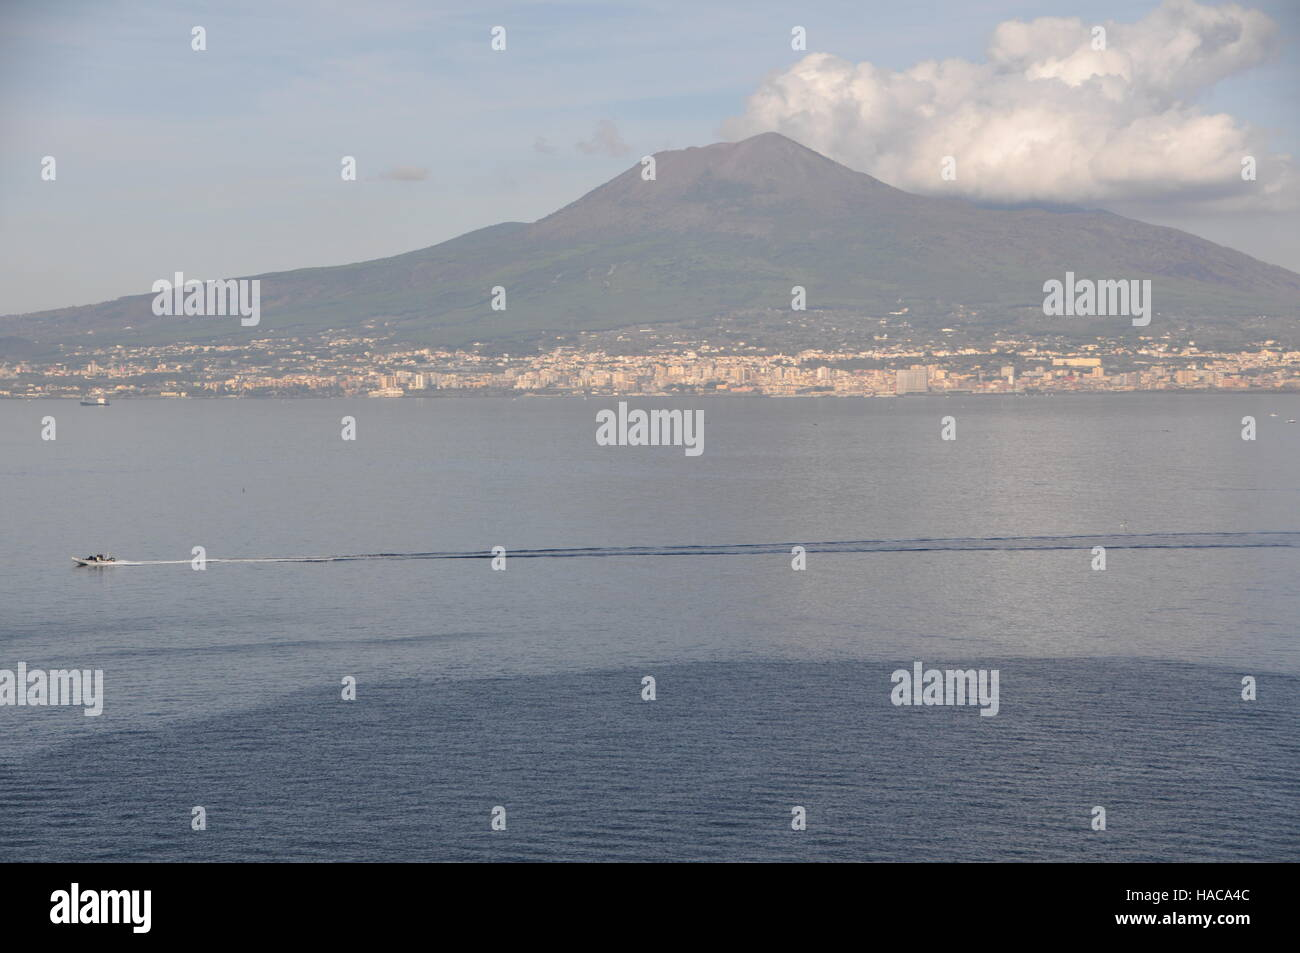 Mount Vesuvius and the Gulf of Naples - Stock Image